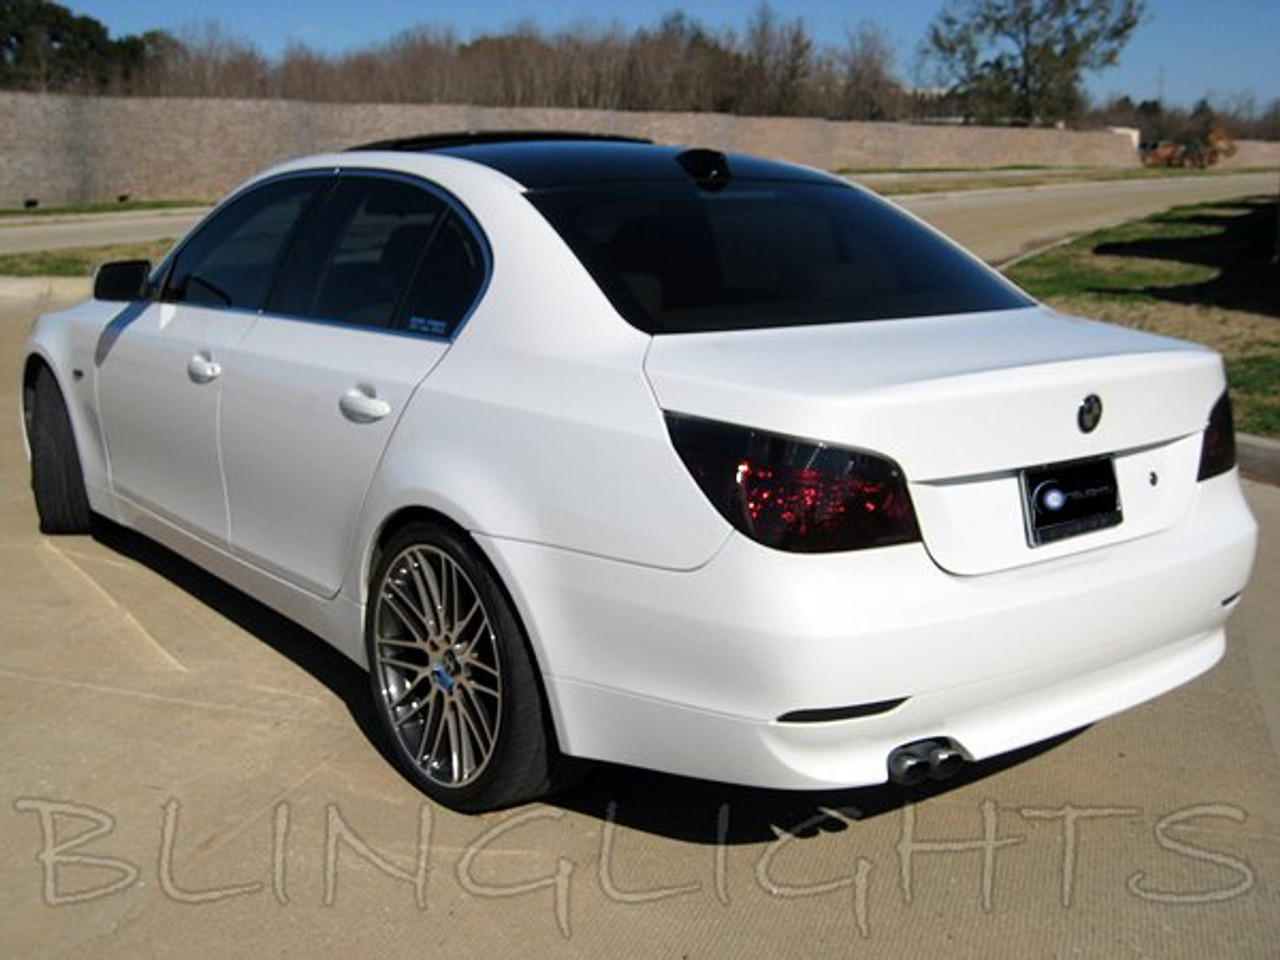 Bmw 5 Series E60 E61 Tinted Tail Lamp Light Overlays Kit Smoked Protection Film Blinglights Com